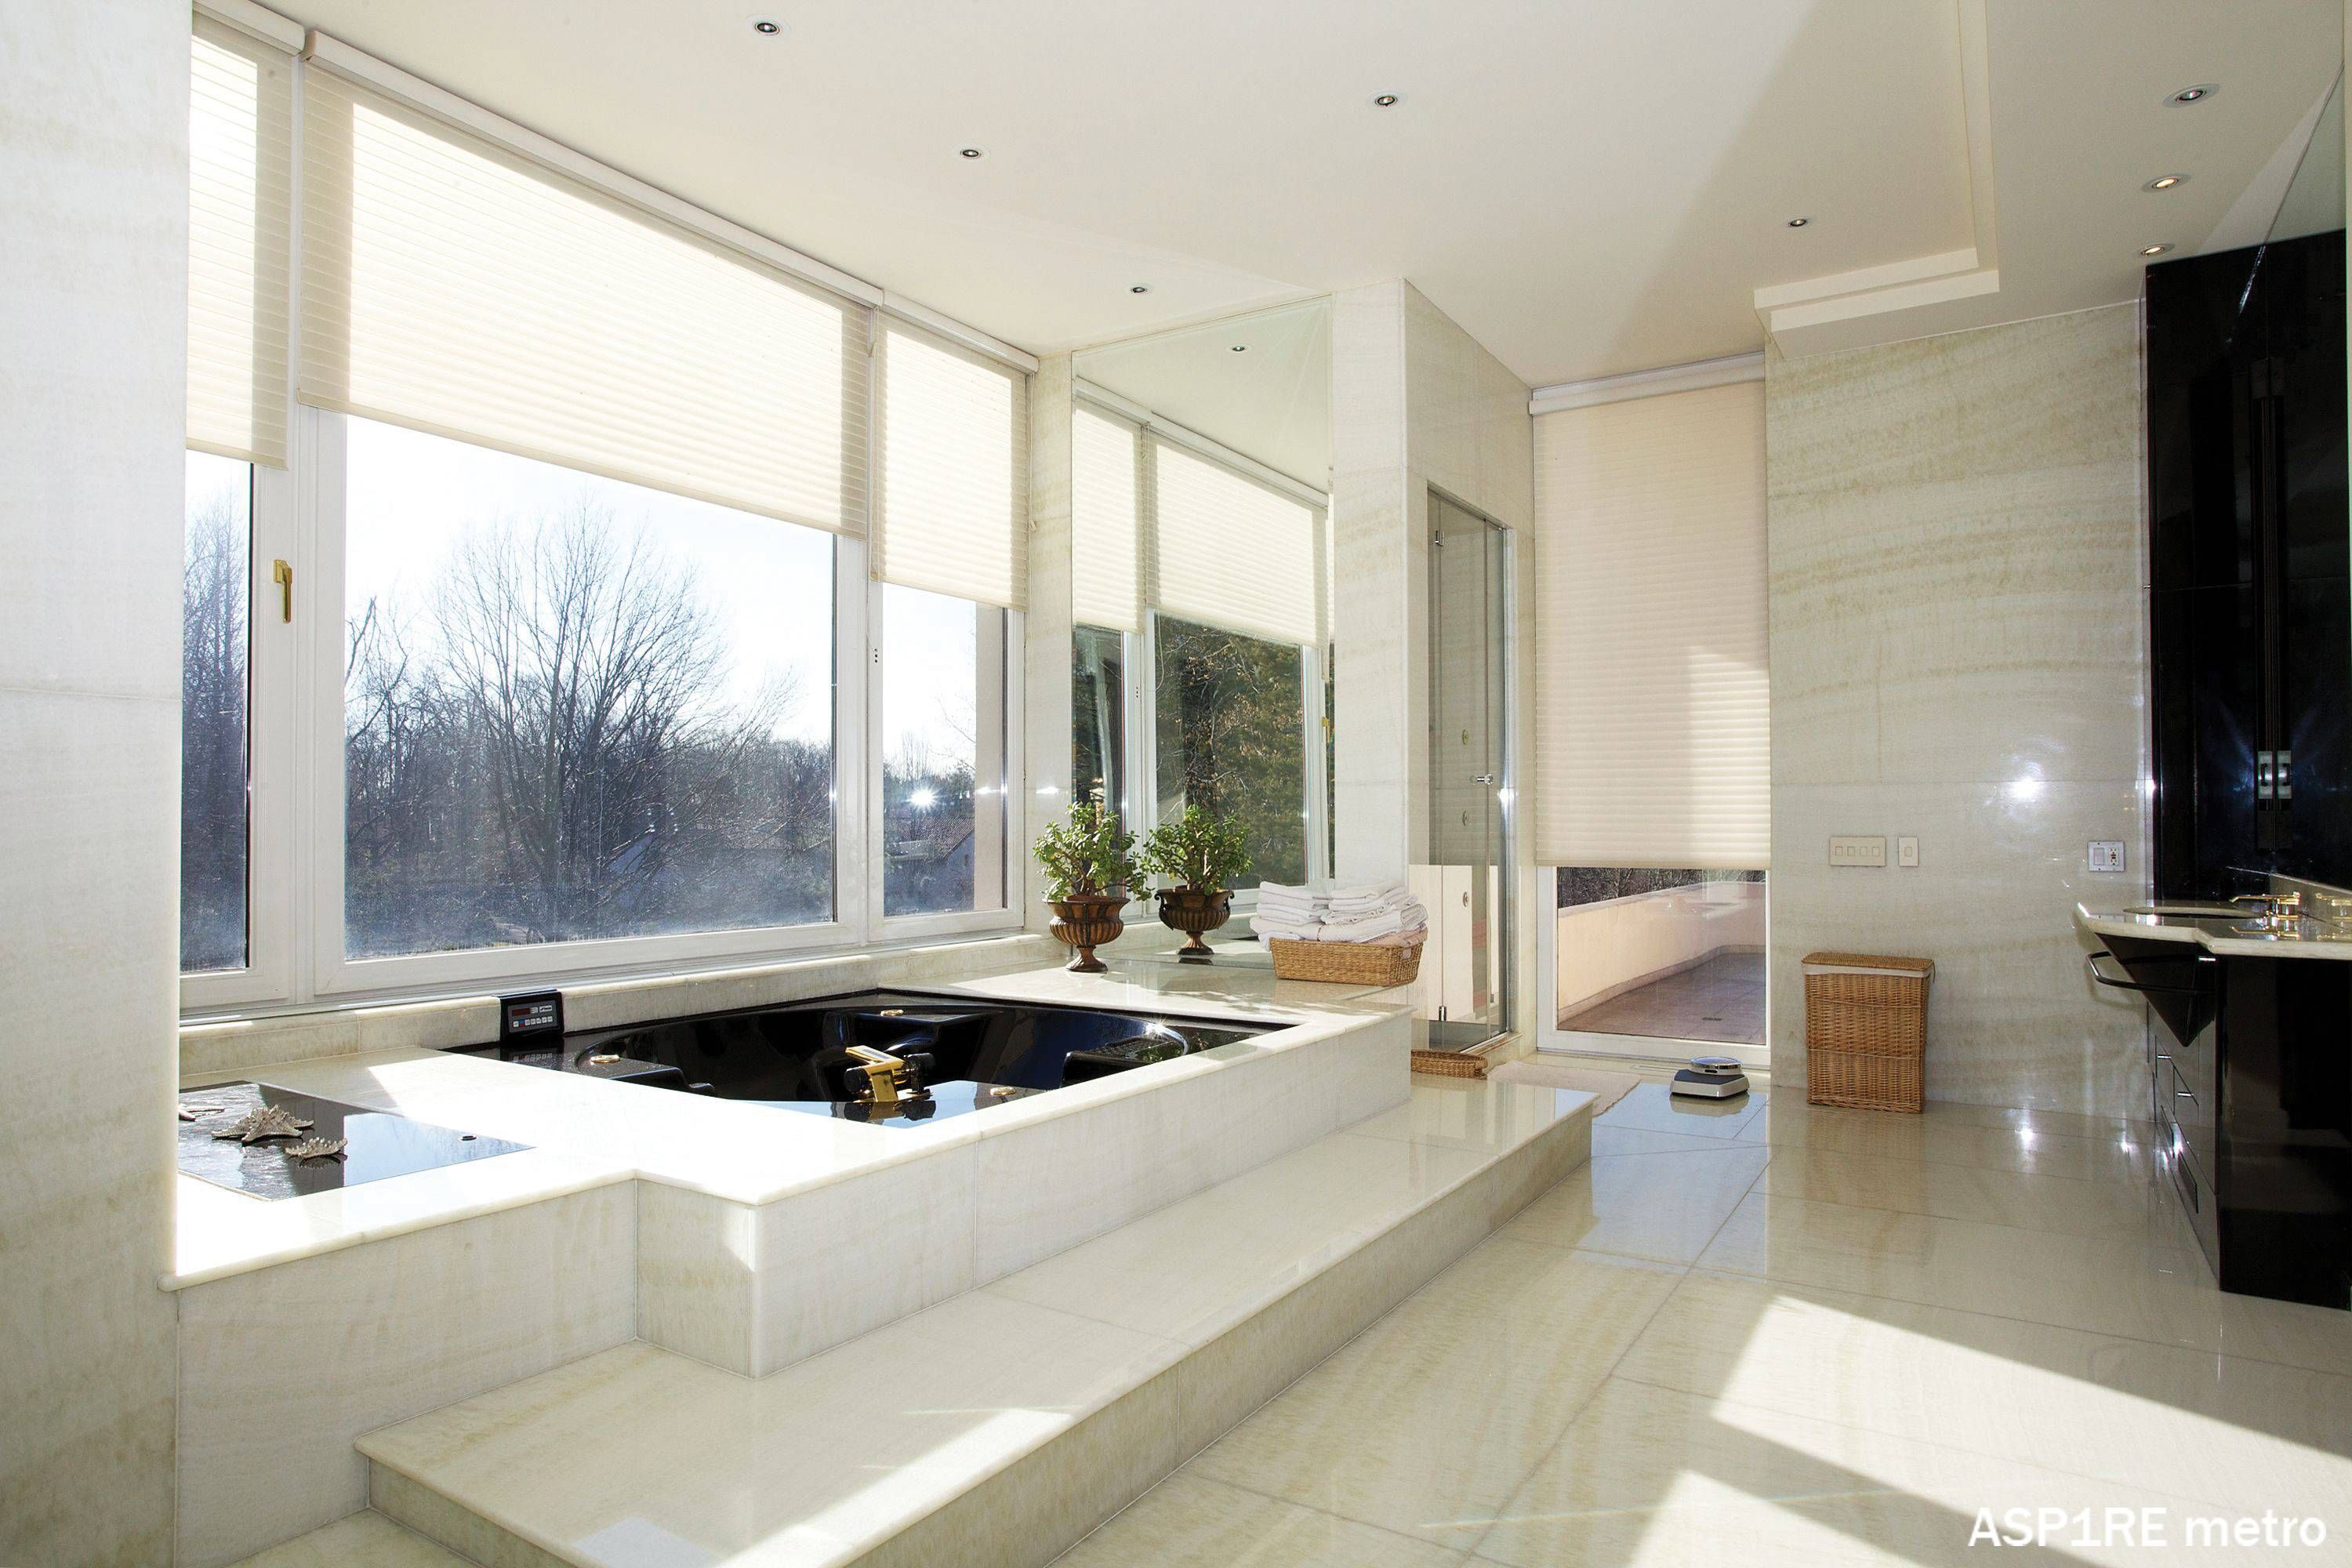 big bathroom ideas - Google Search | Bathtubs | Pinterest | Big ...